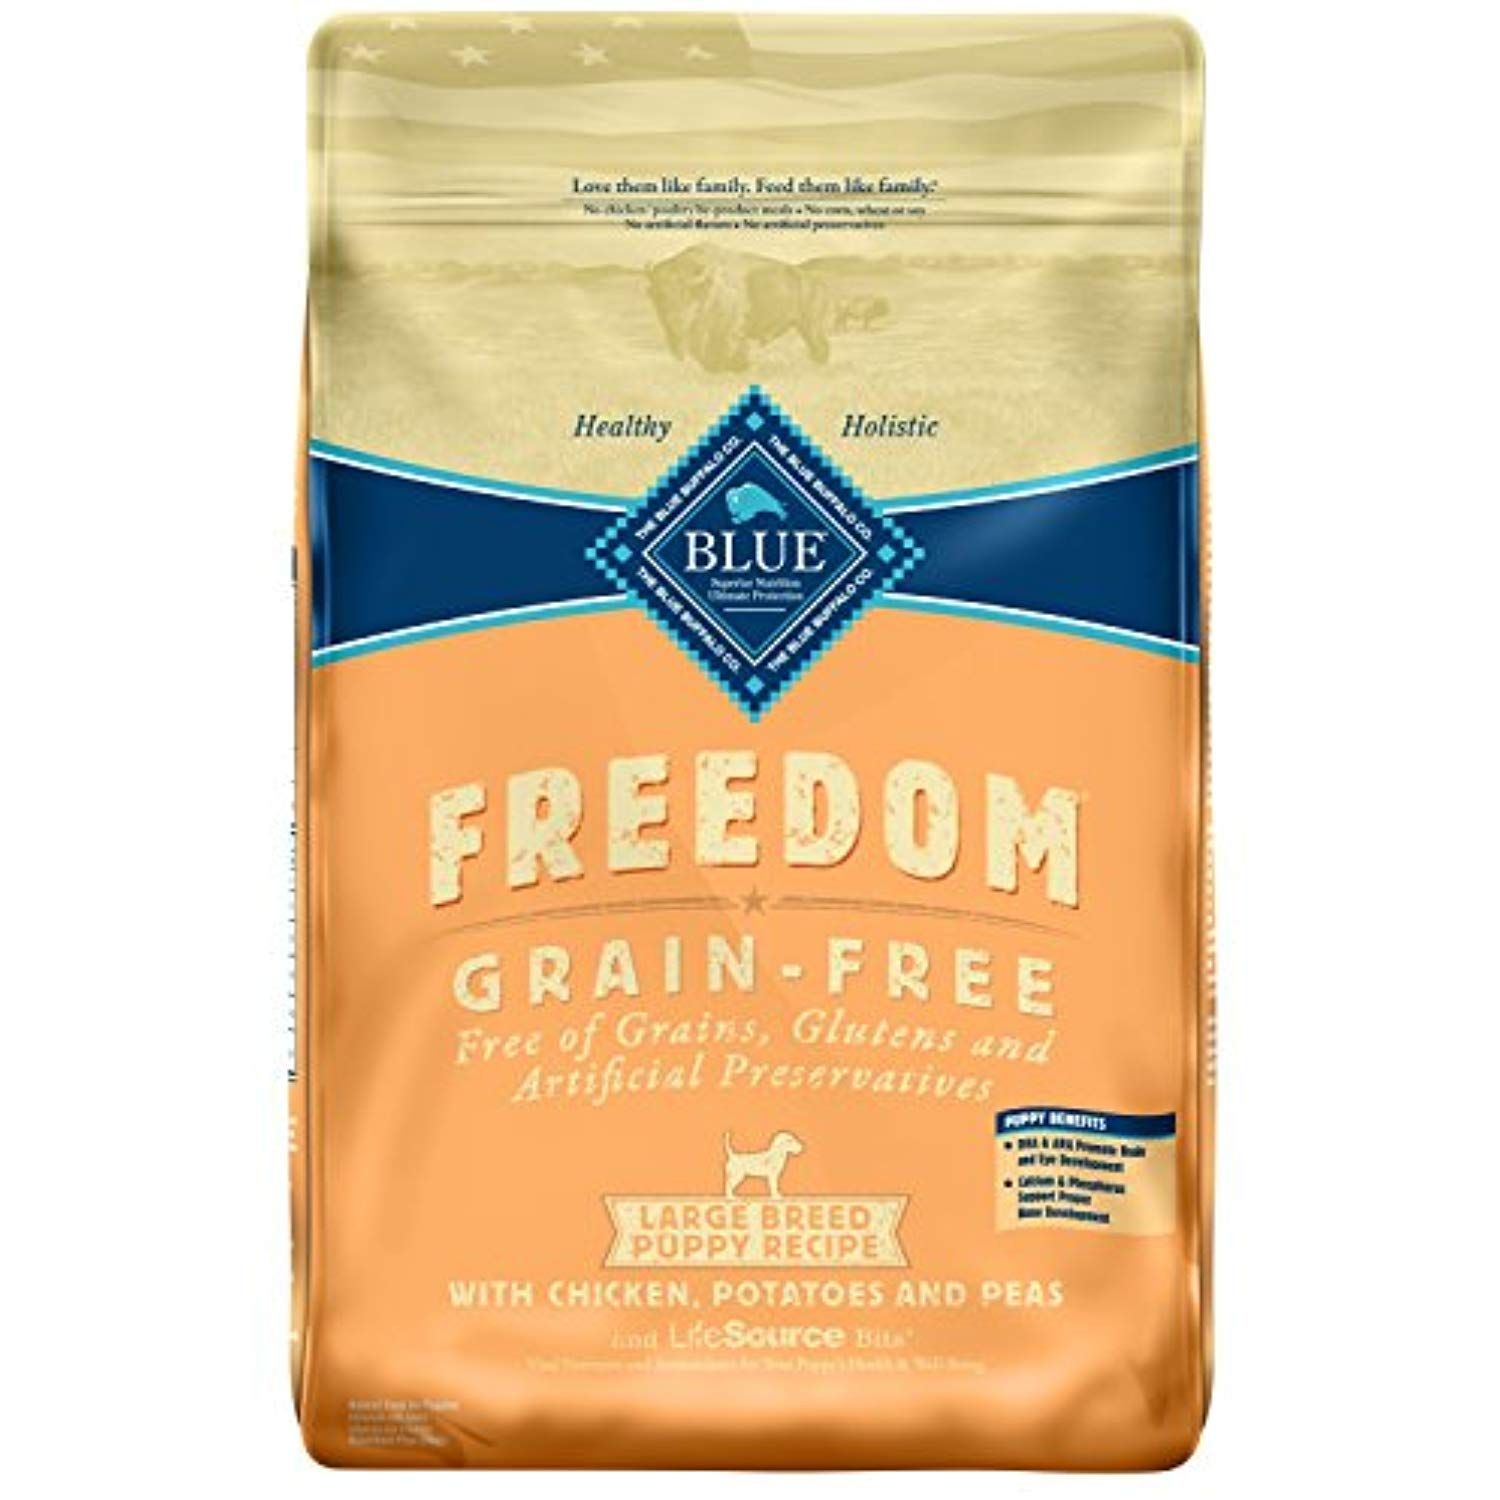 Blue Buffalo Freedom Grain Free Natural Puppy Large Breed Dry Dog Food Chicken 24 Lb To View Fu Dry Dog Food Dry Cat Food Large Breed Puppy Food